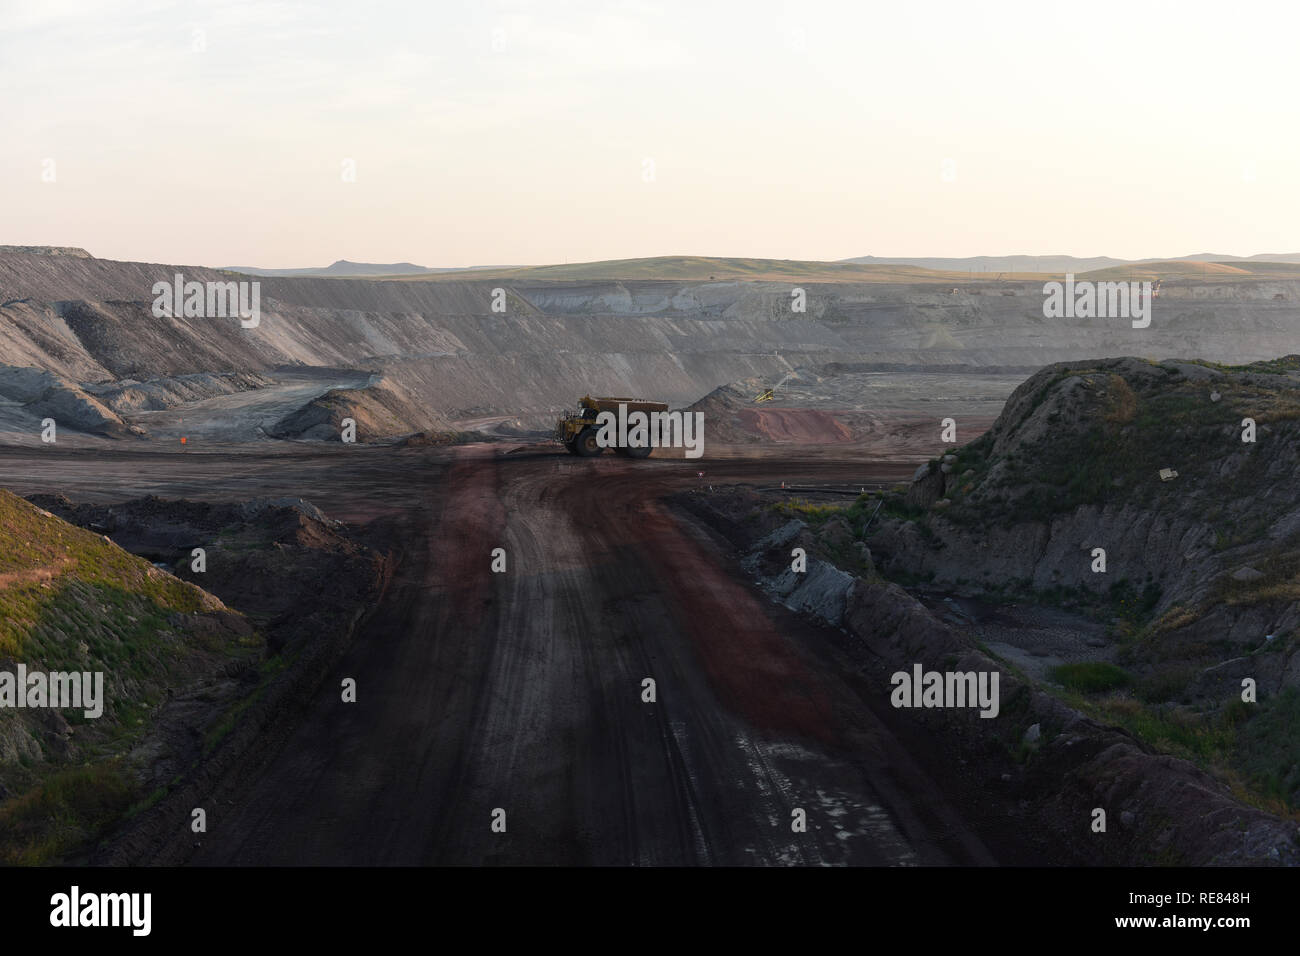 Giant size water tank truck driving on a road inside a large open pit coal mine in the Powder River Basin of Wyoming. Stock Photo